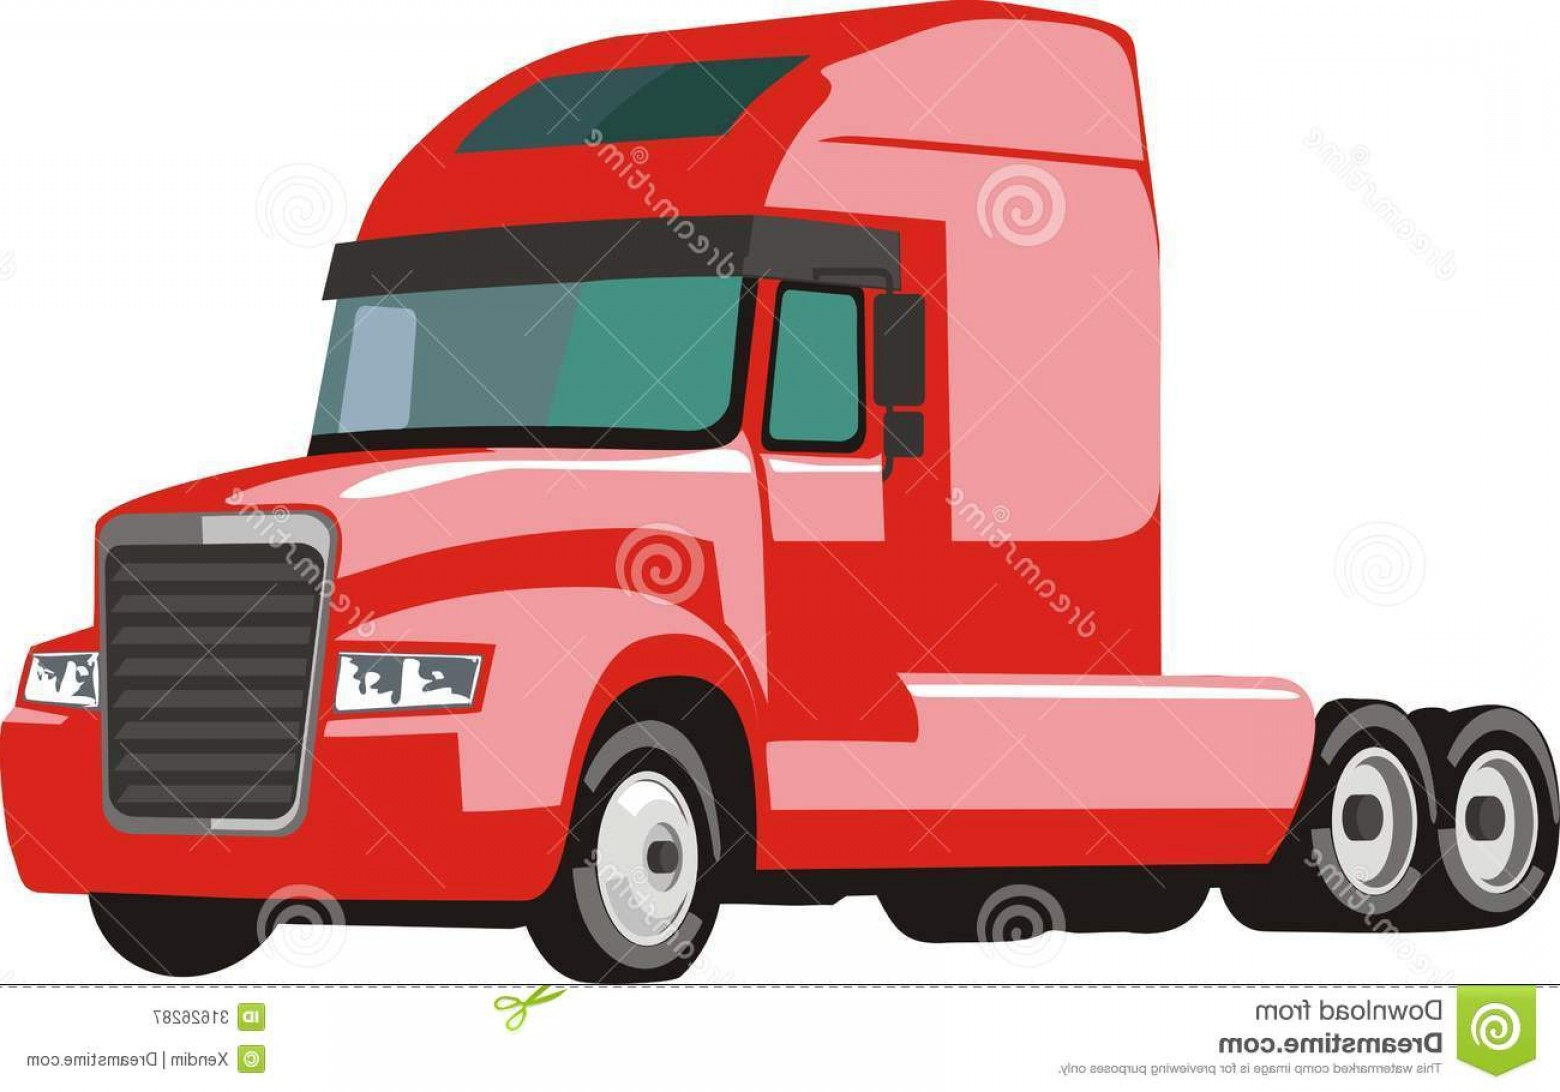 Vector Semi Tanker: Royalty Free Stock Photography Red Semi Trailer Truck Illustration Isolated White Background Image